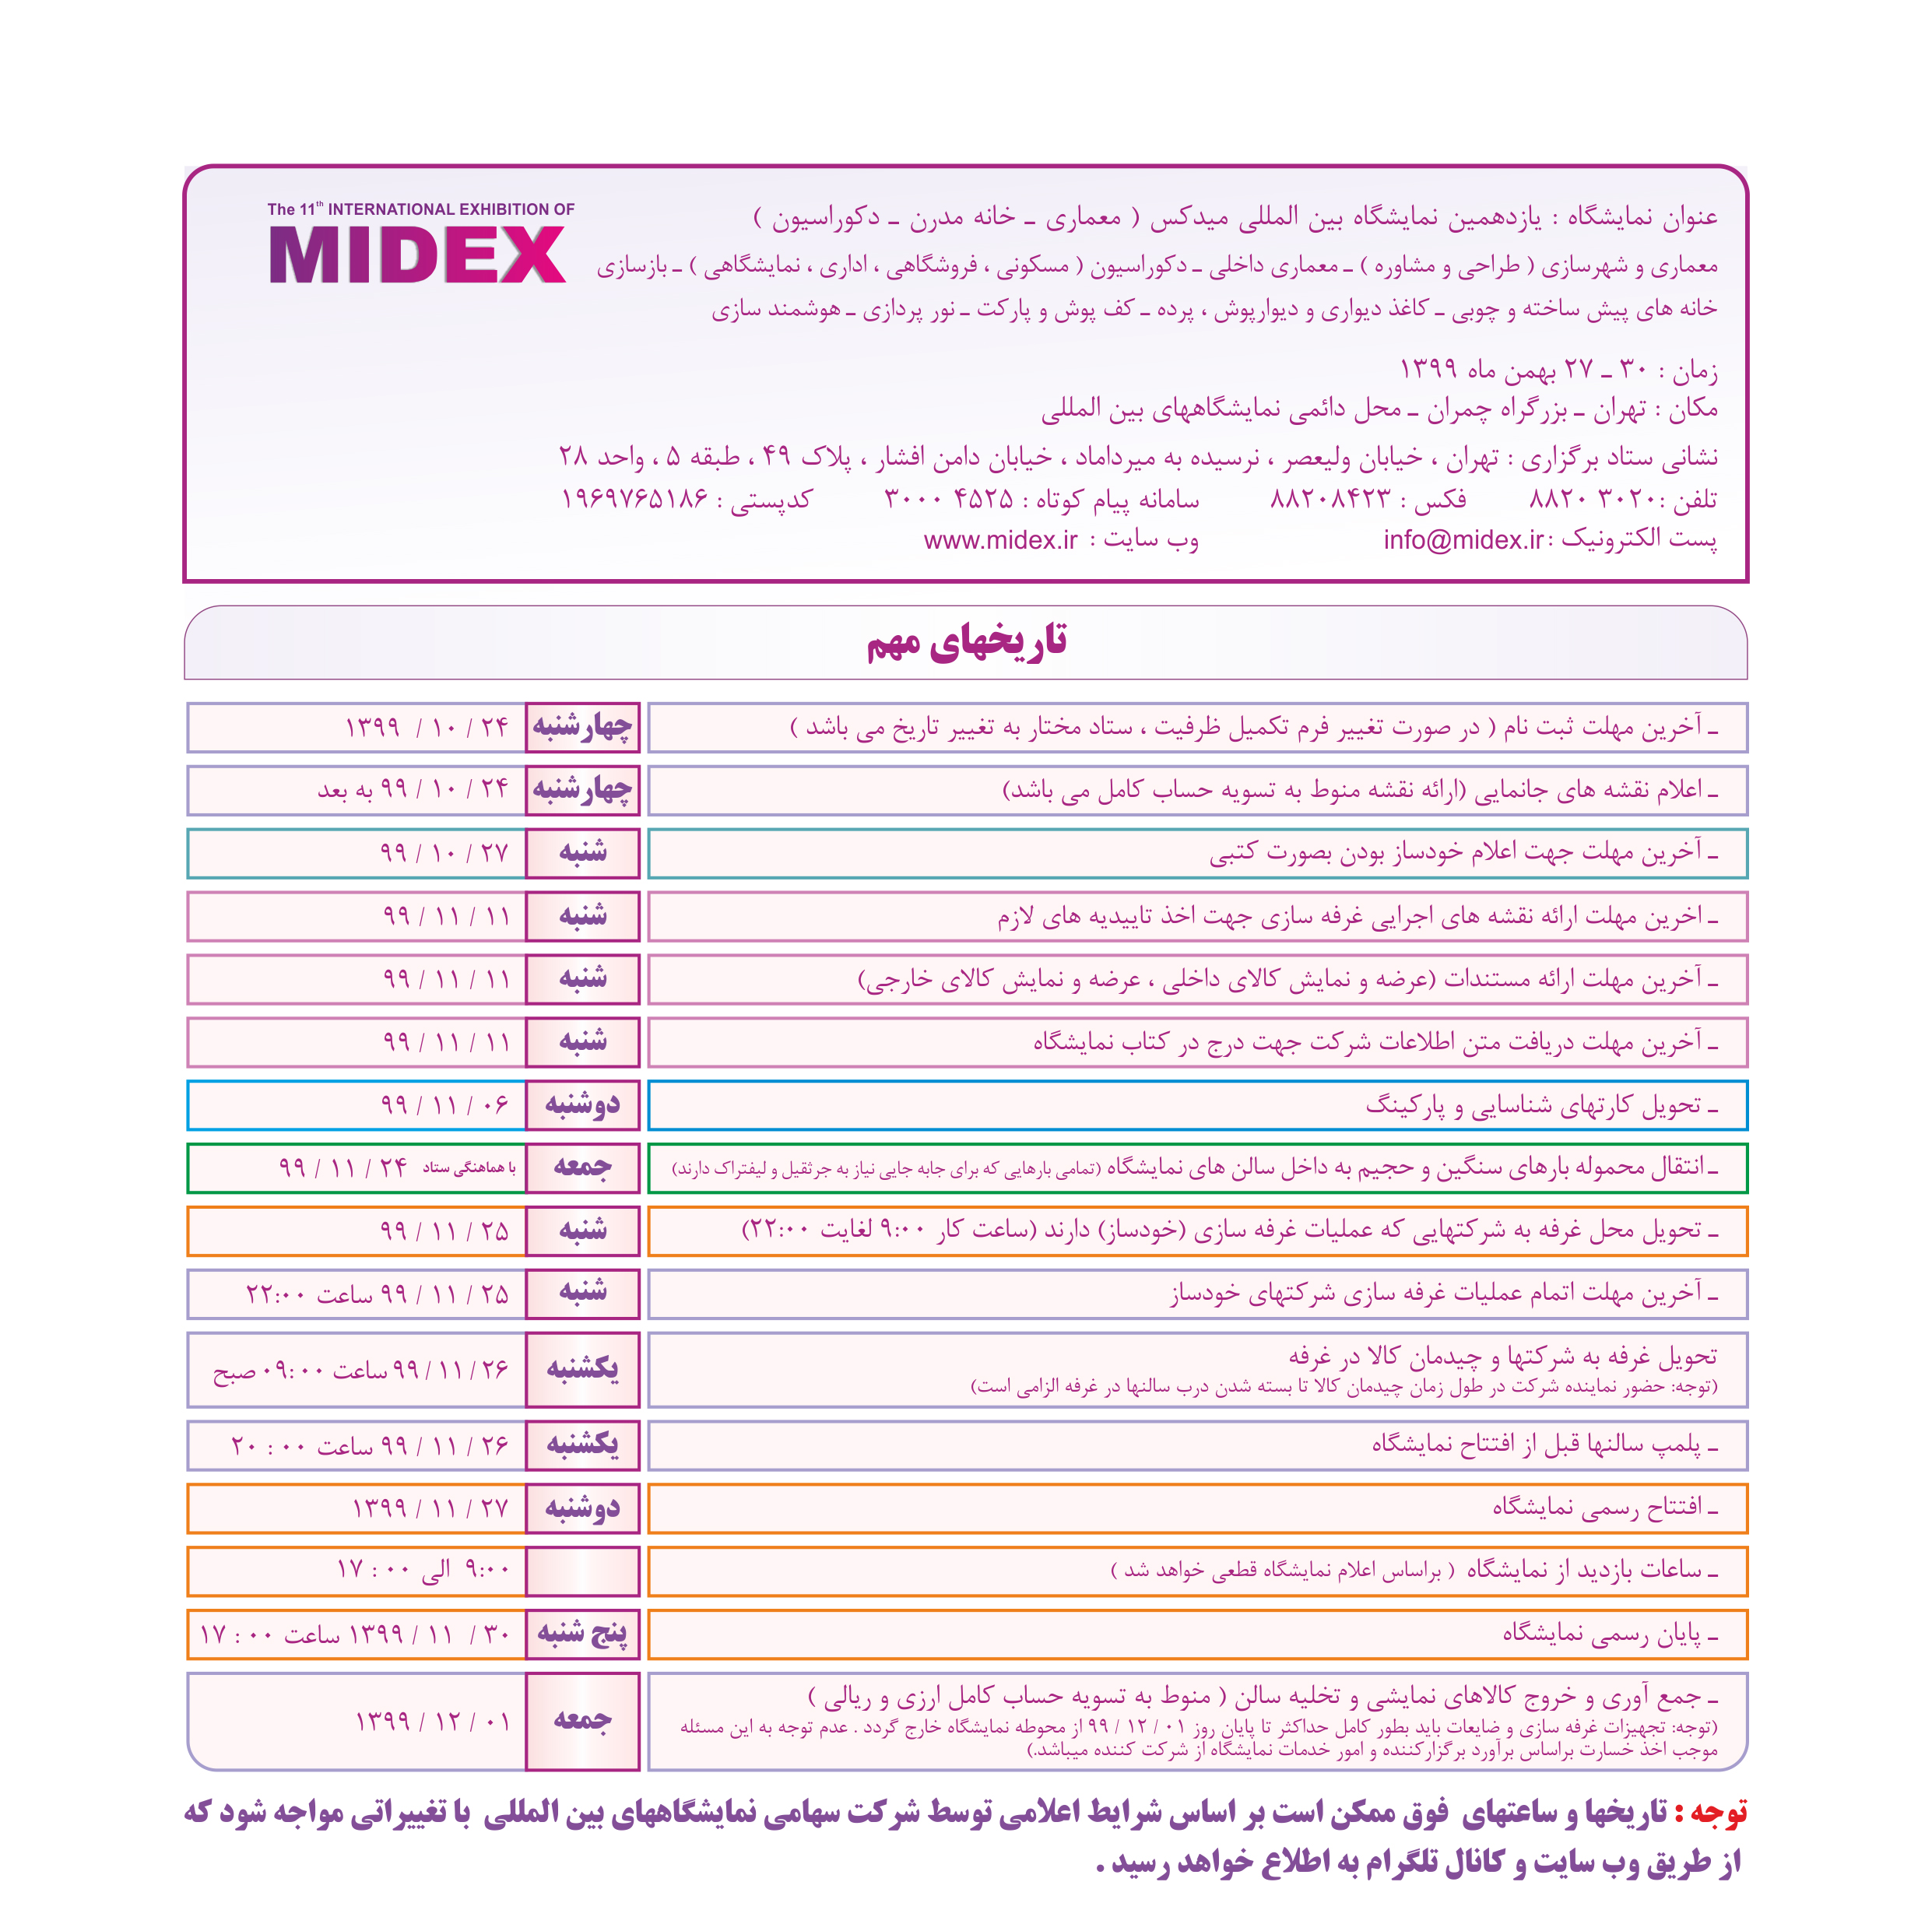 midex2021 ImportantDate Fa99-11-04